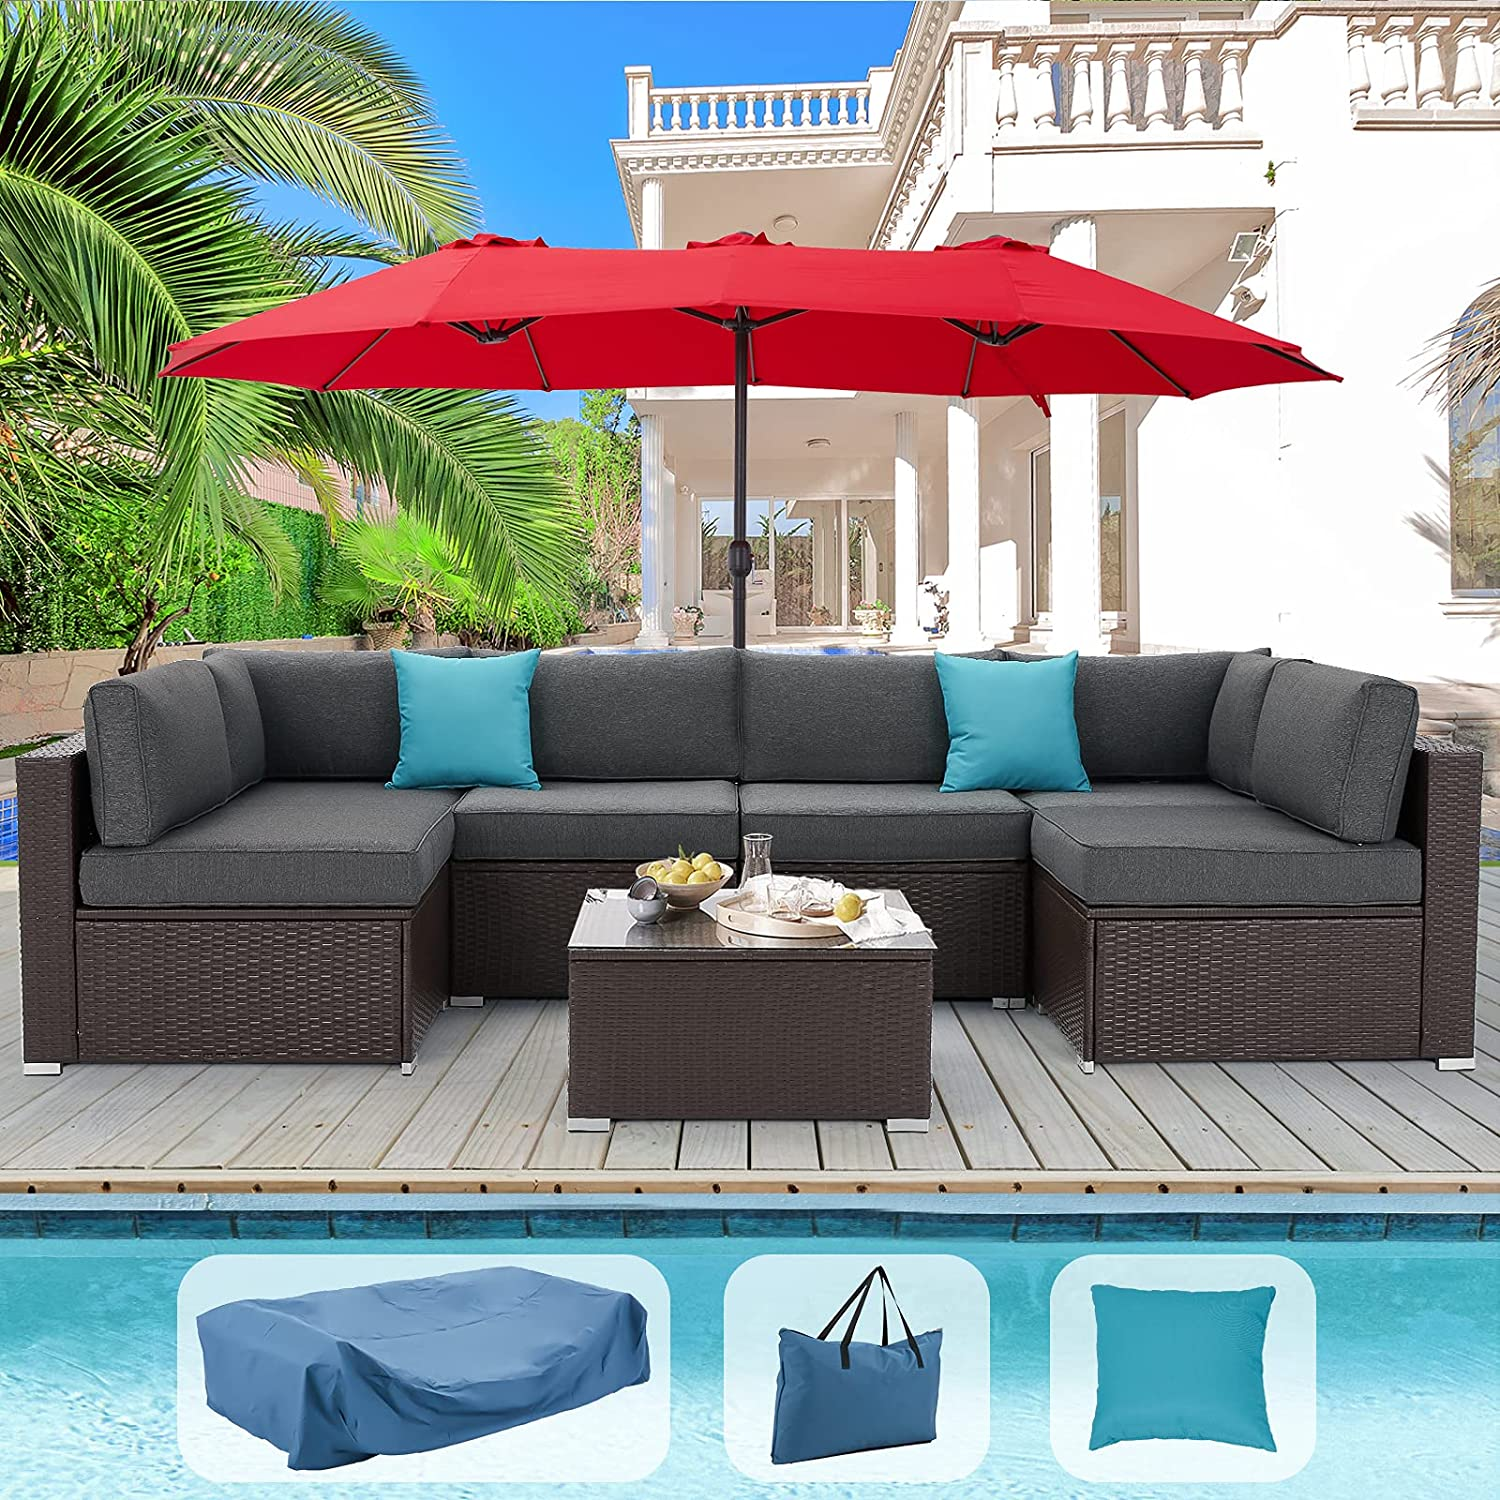 AECOJOY Large Patio Furniture New products, world's highest quality popular! 7 Piece Set PE Weather Milwaukee Mall All Rattan